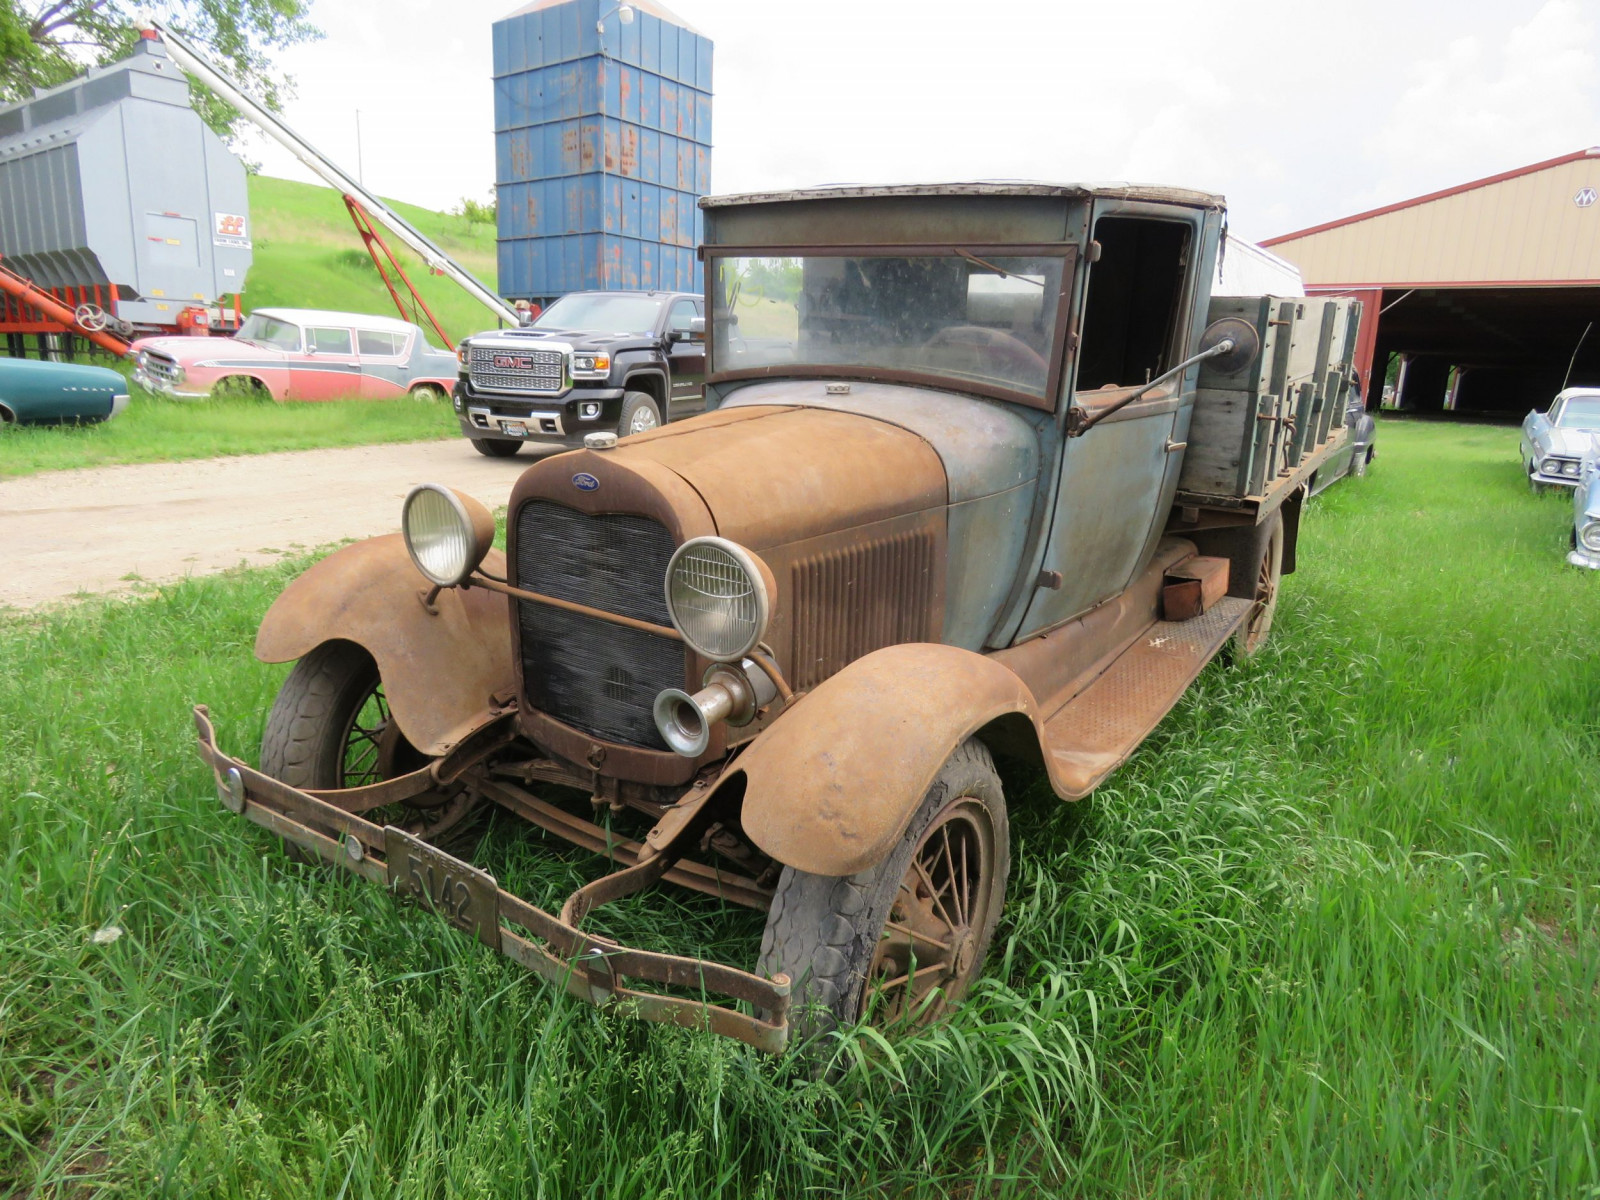 1928 Ford Model A Truck - Image 3